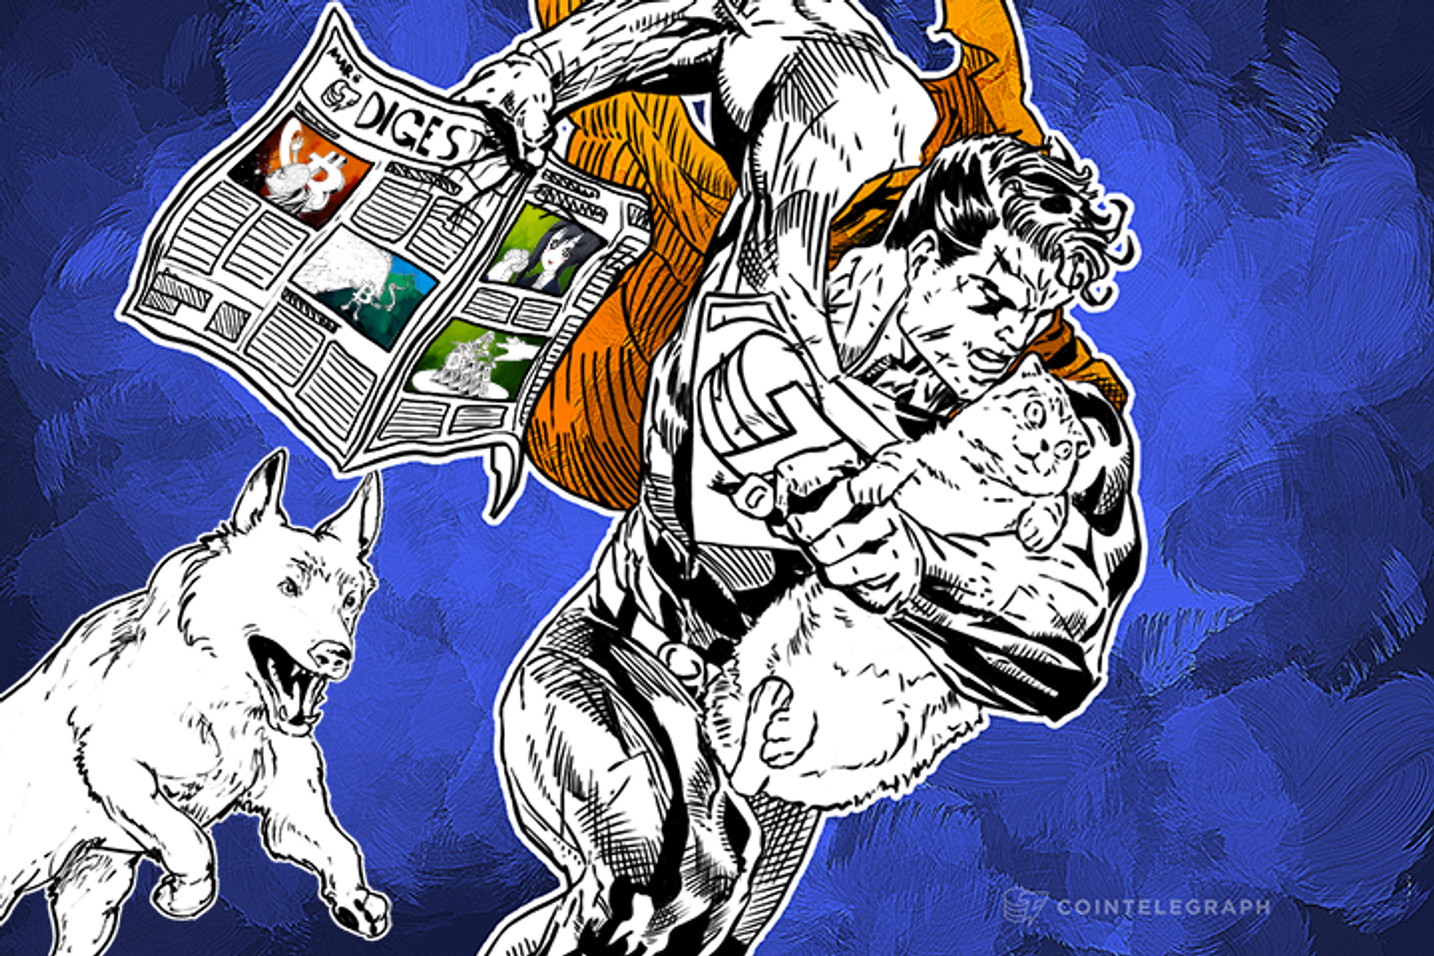 MAR 6 DIGEST: Third US Marshals Bitcoin Auction Sees Increased Bidder Interest, Study Suggests Miners Lose Money